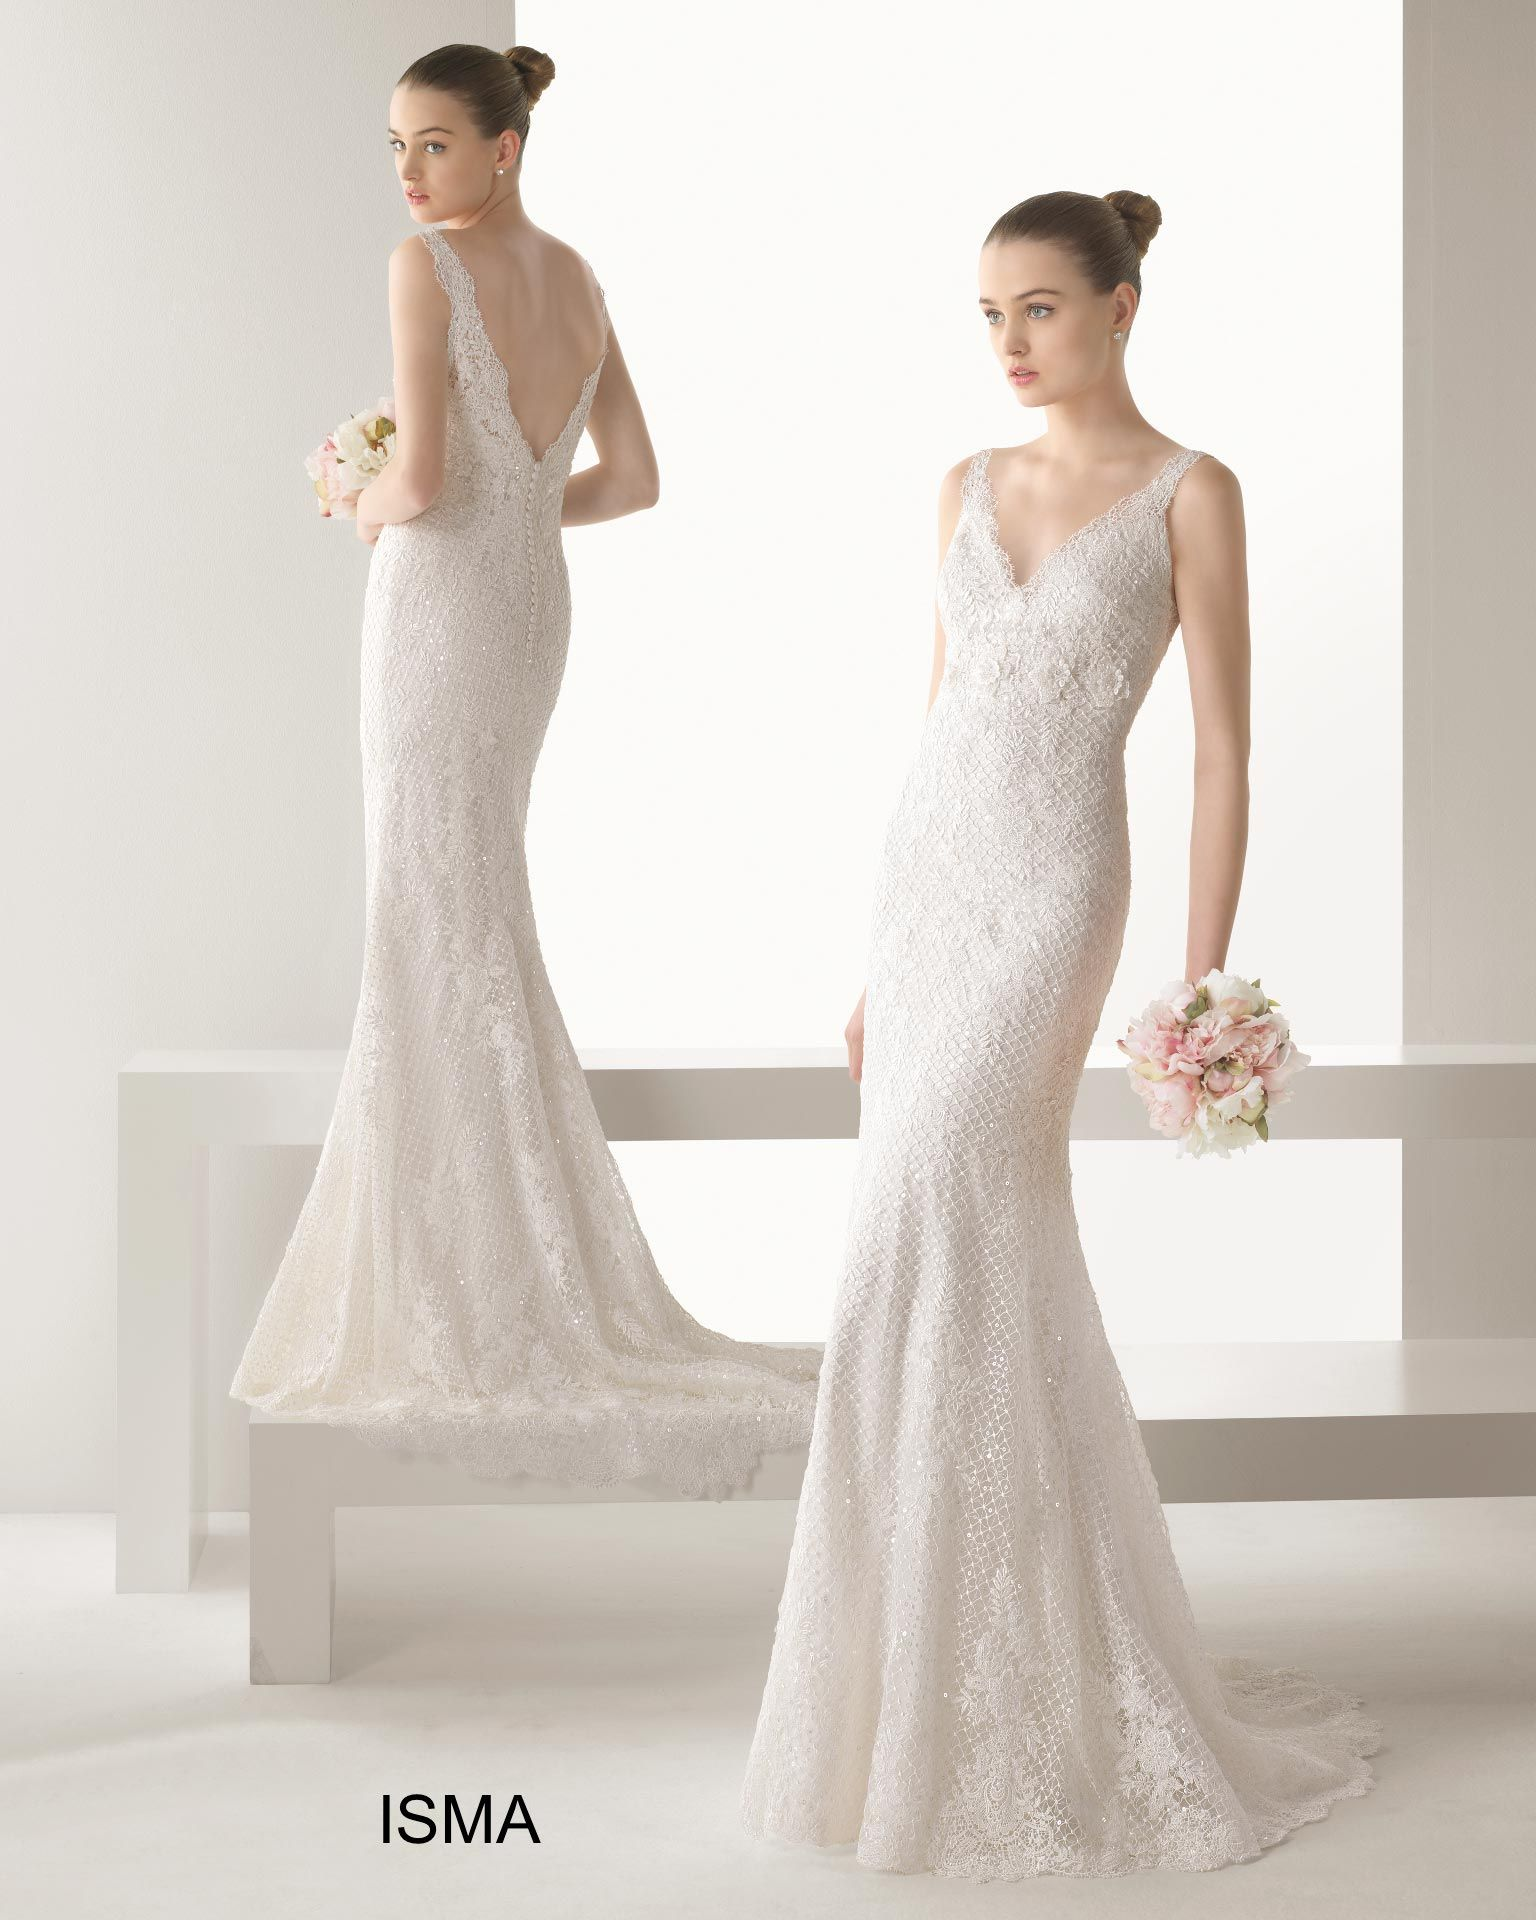 Rosa clarÁ sacramento wedding gowns and dresses this lovely